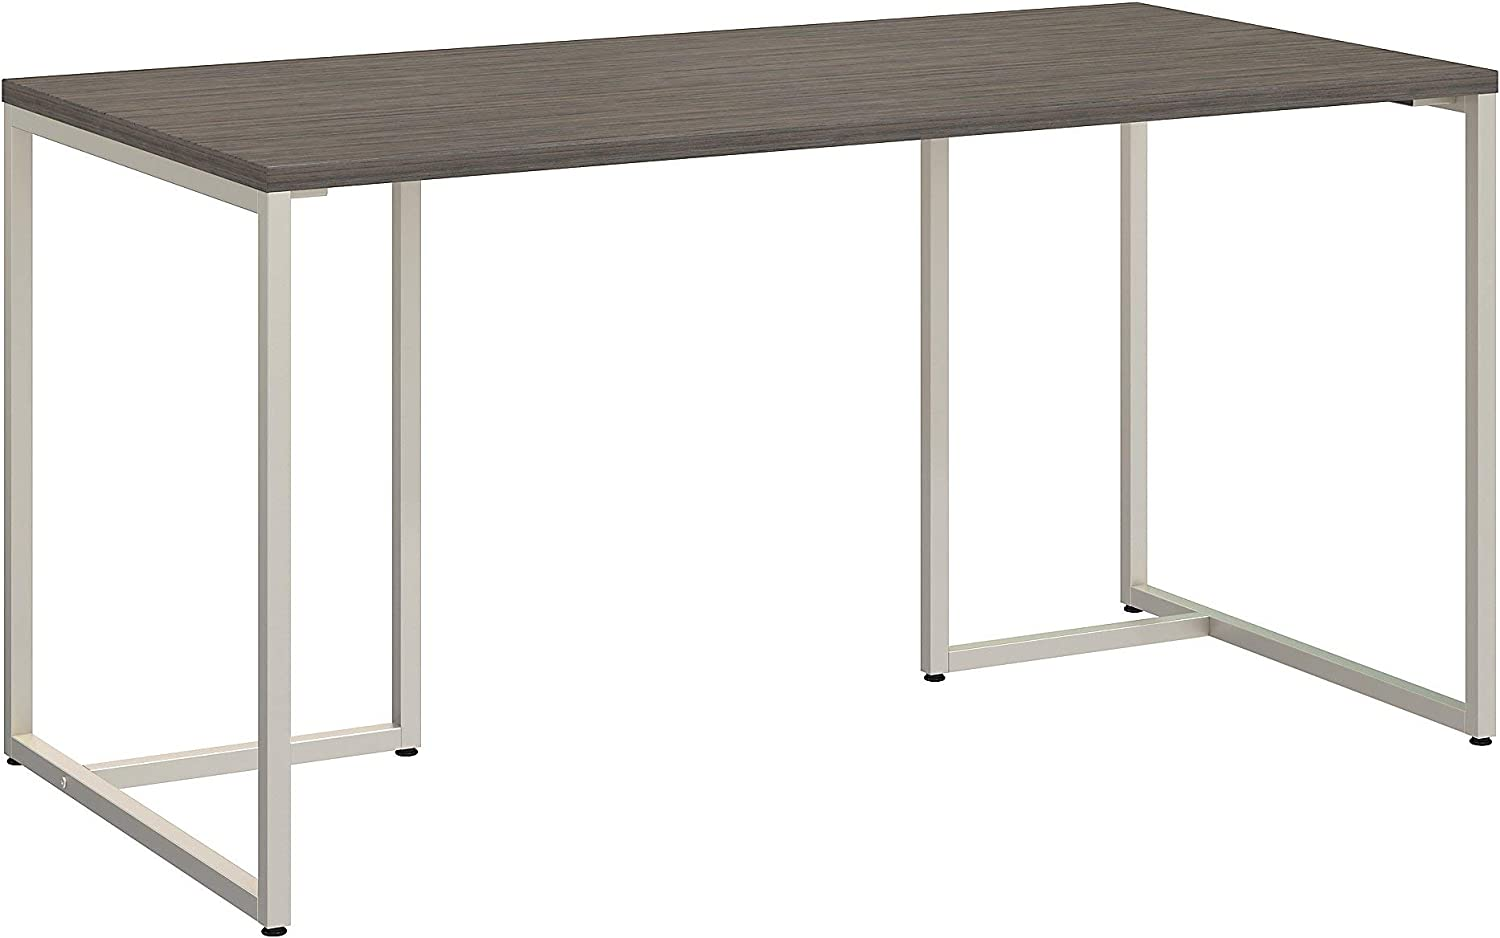 Bush Business Furniture Office by kathy ireland Method Table Desk, 60W, Cocoa